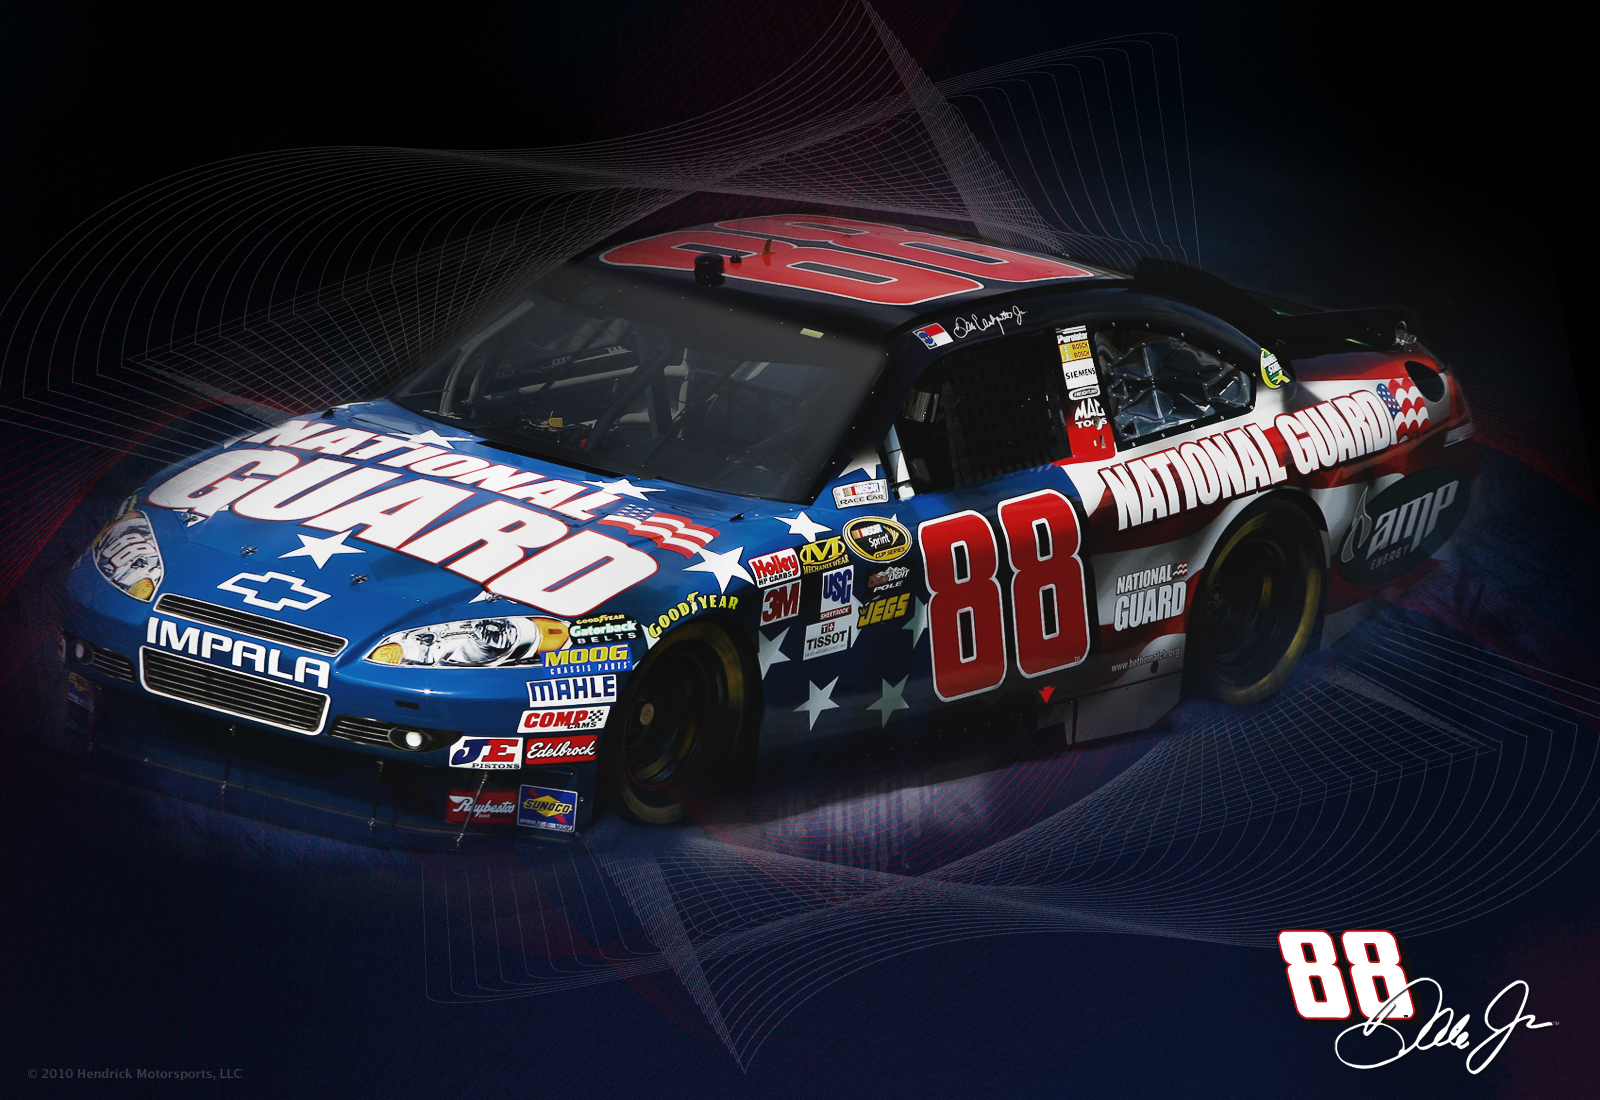 Nascar Racing Guard Events Promotions National 1474290 Wallpaper Race